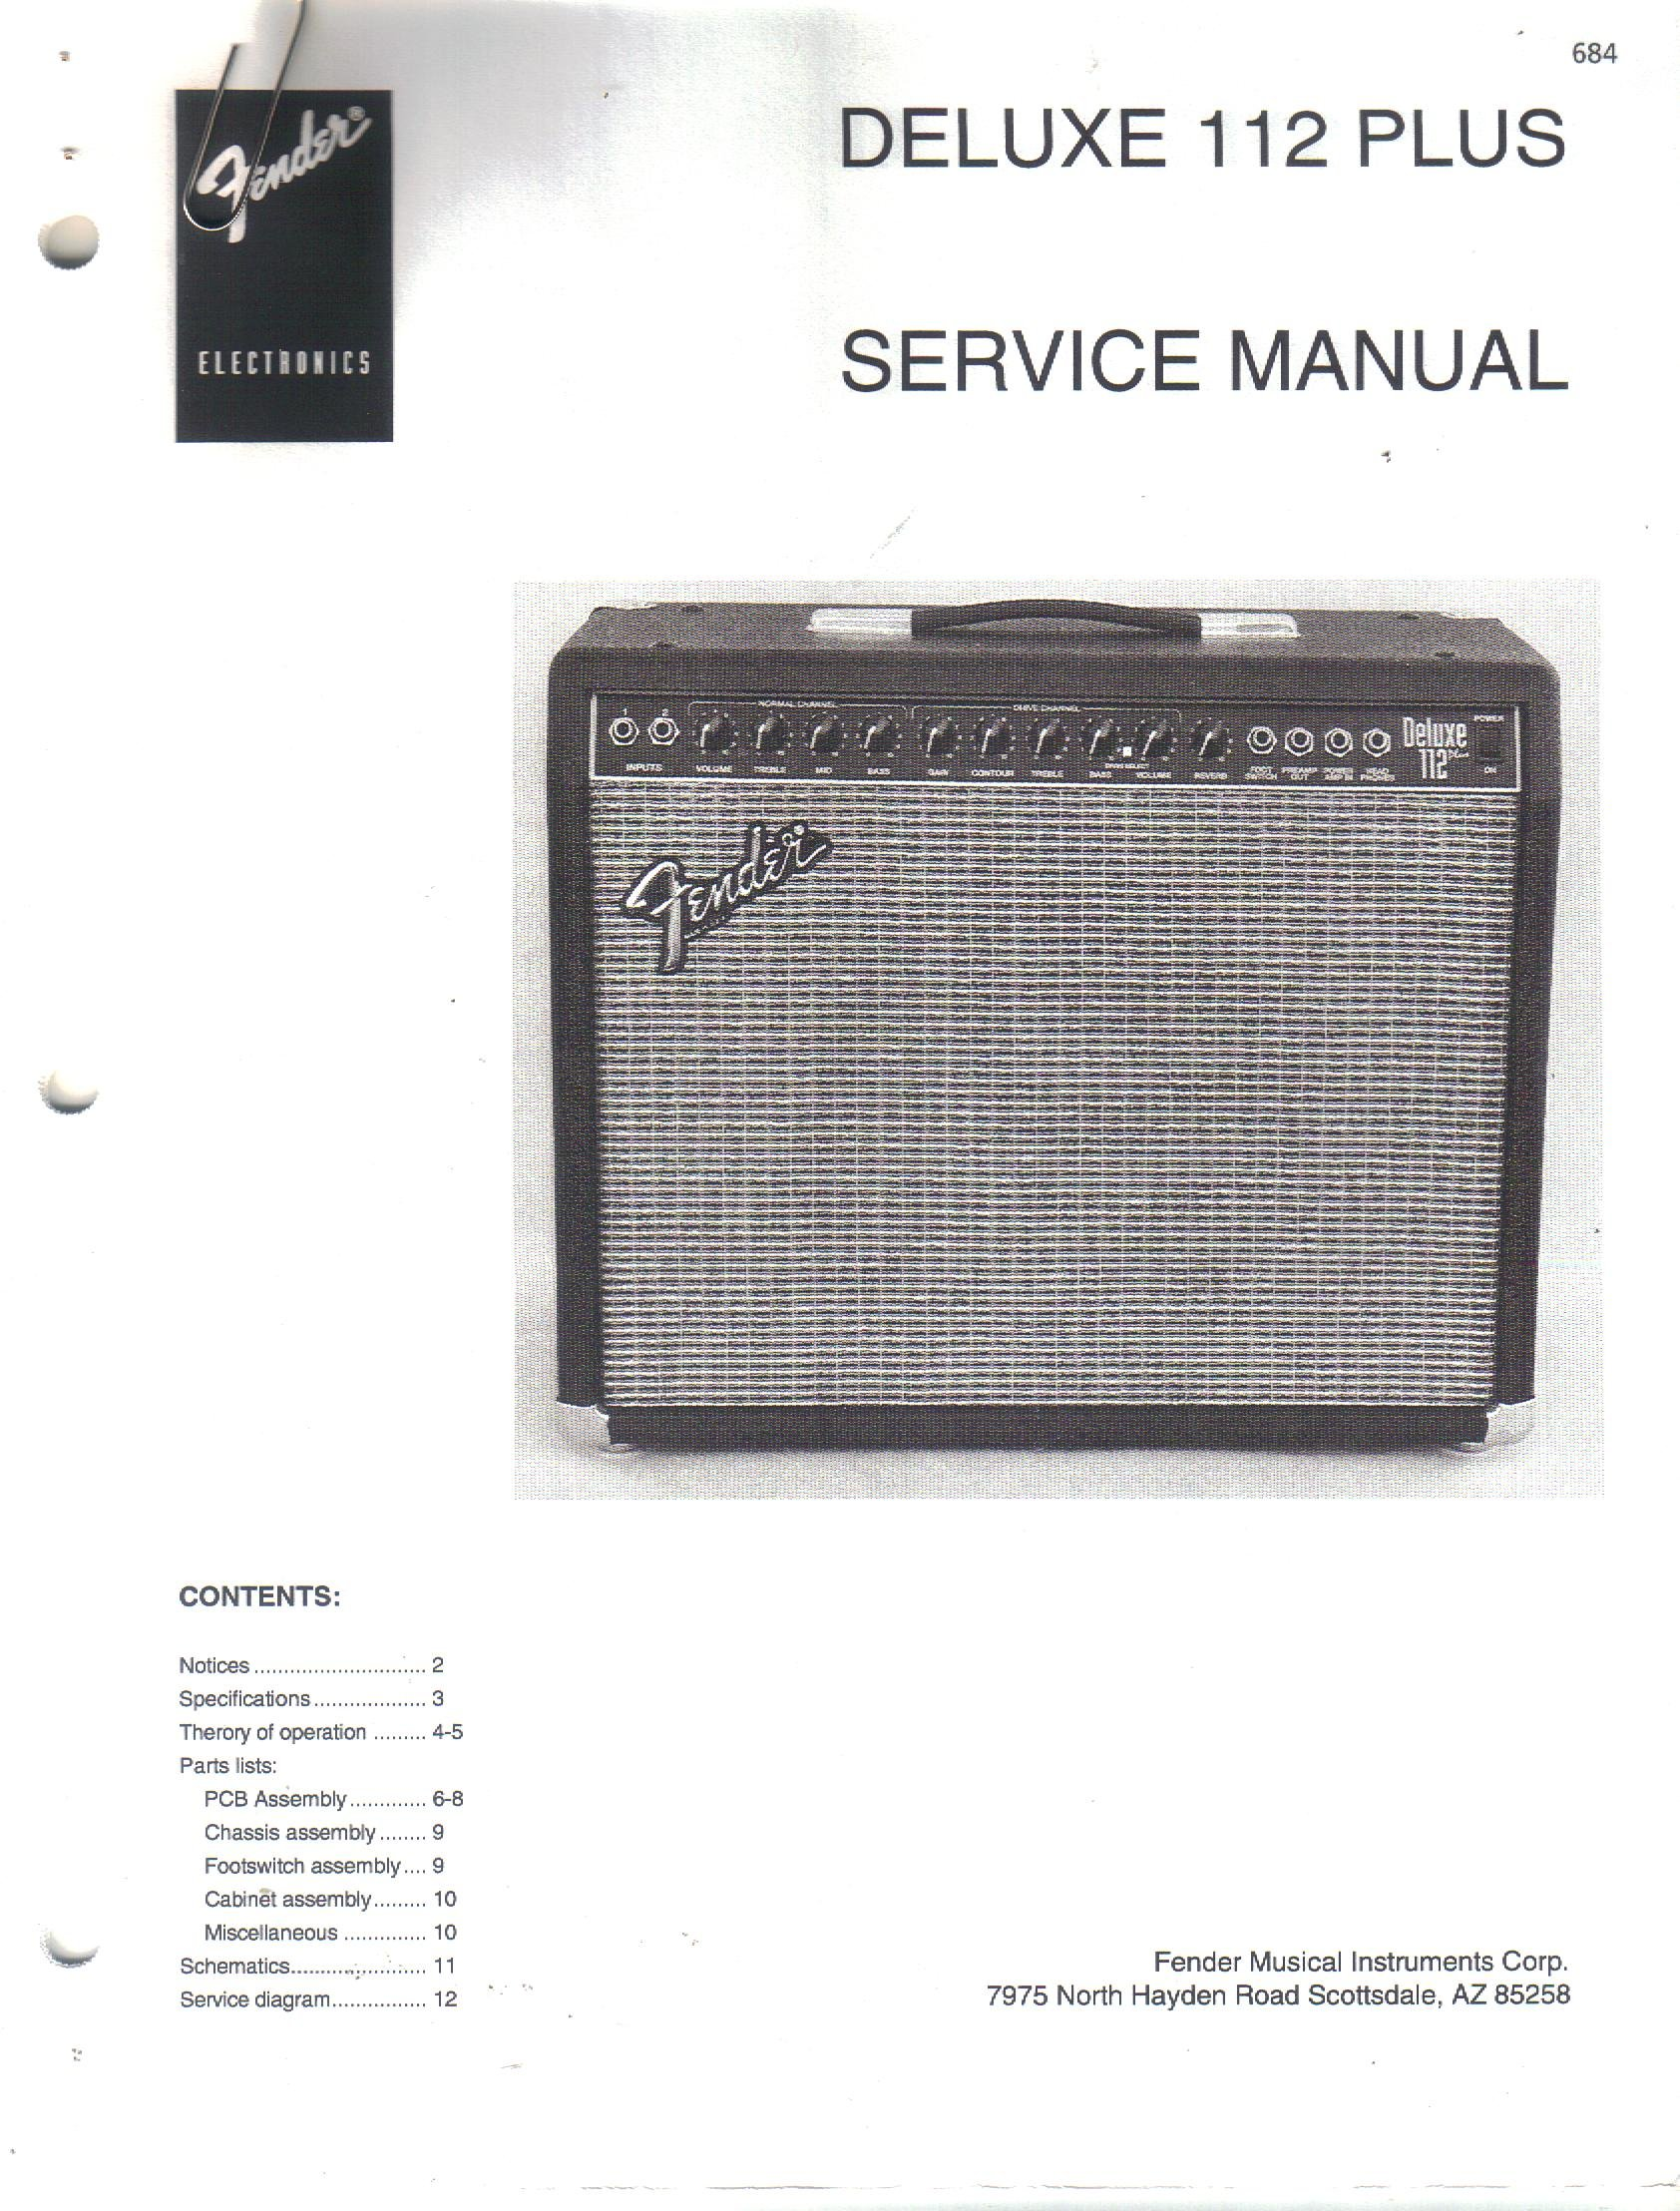 Fender deluxe 112 plus guitar amplifier amp service manual repair fender deluxe 112 plus guitar amplifier amp service manual repair guide fender electronics sunn amazon books freerunsca Choice Image